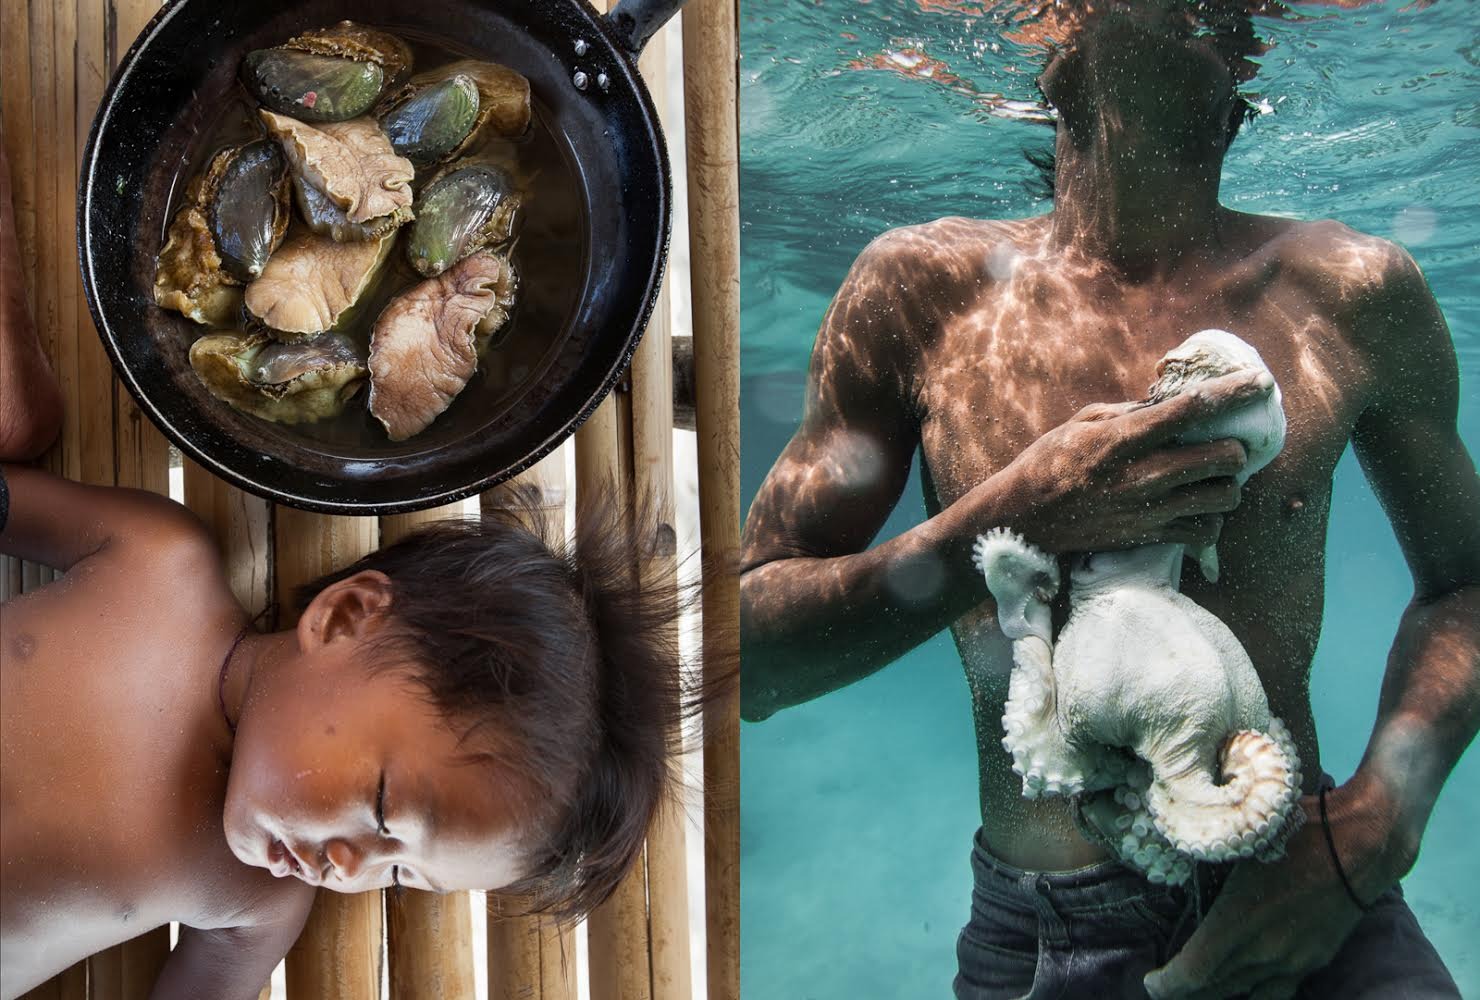 Photographer Matthieu Paley captured the true essence of the Bajau Laut community's way of life - A Bajau baby napping beside a pot of fresh abalone and a fisherman clutching his catch of the day.